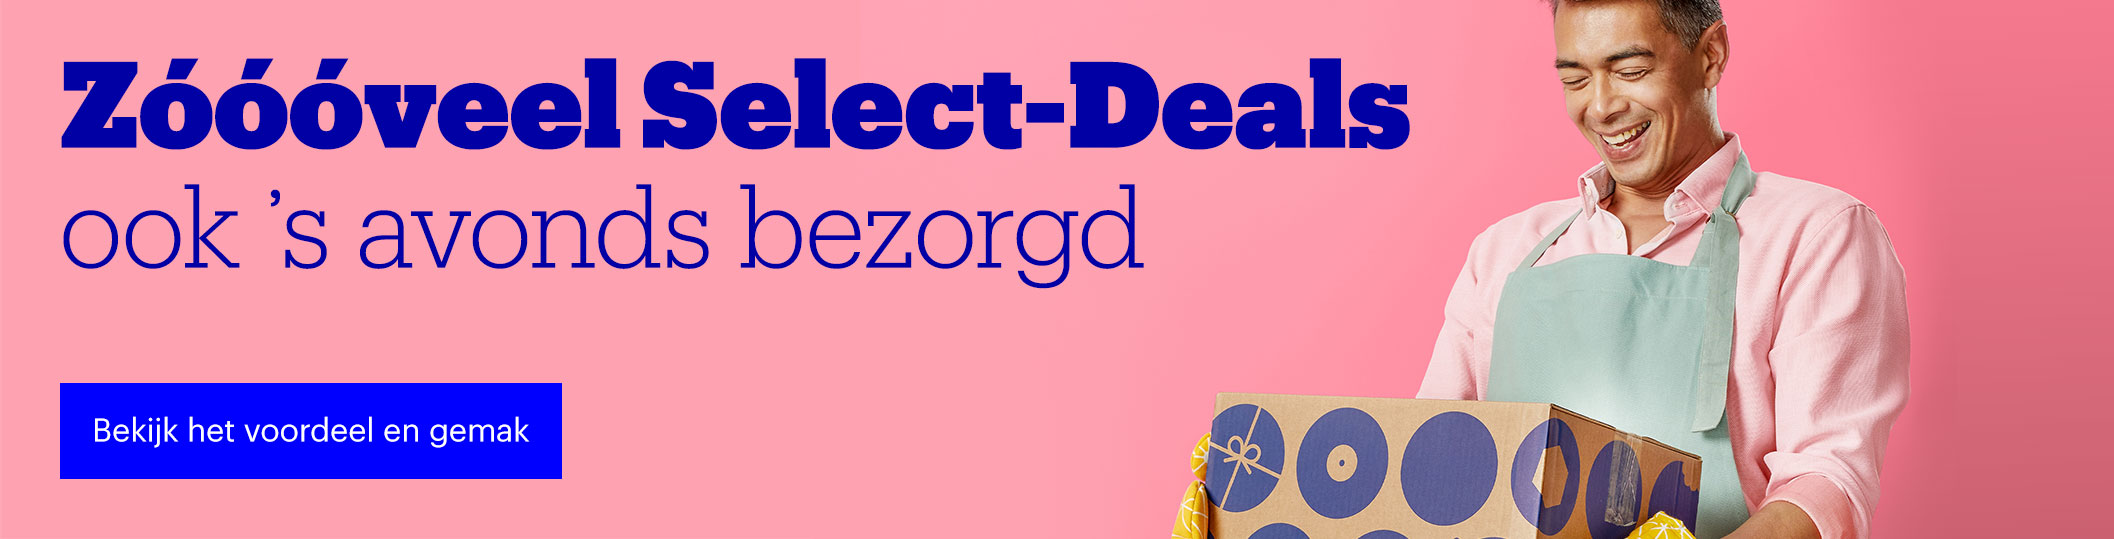 Zóóóveel Select-Deals